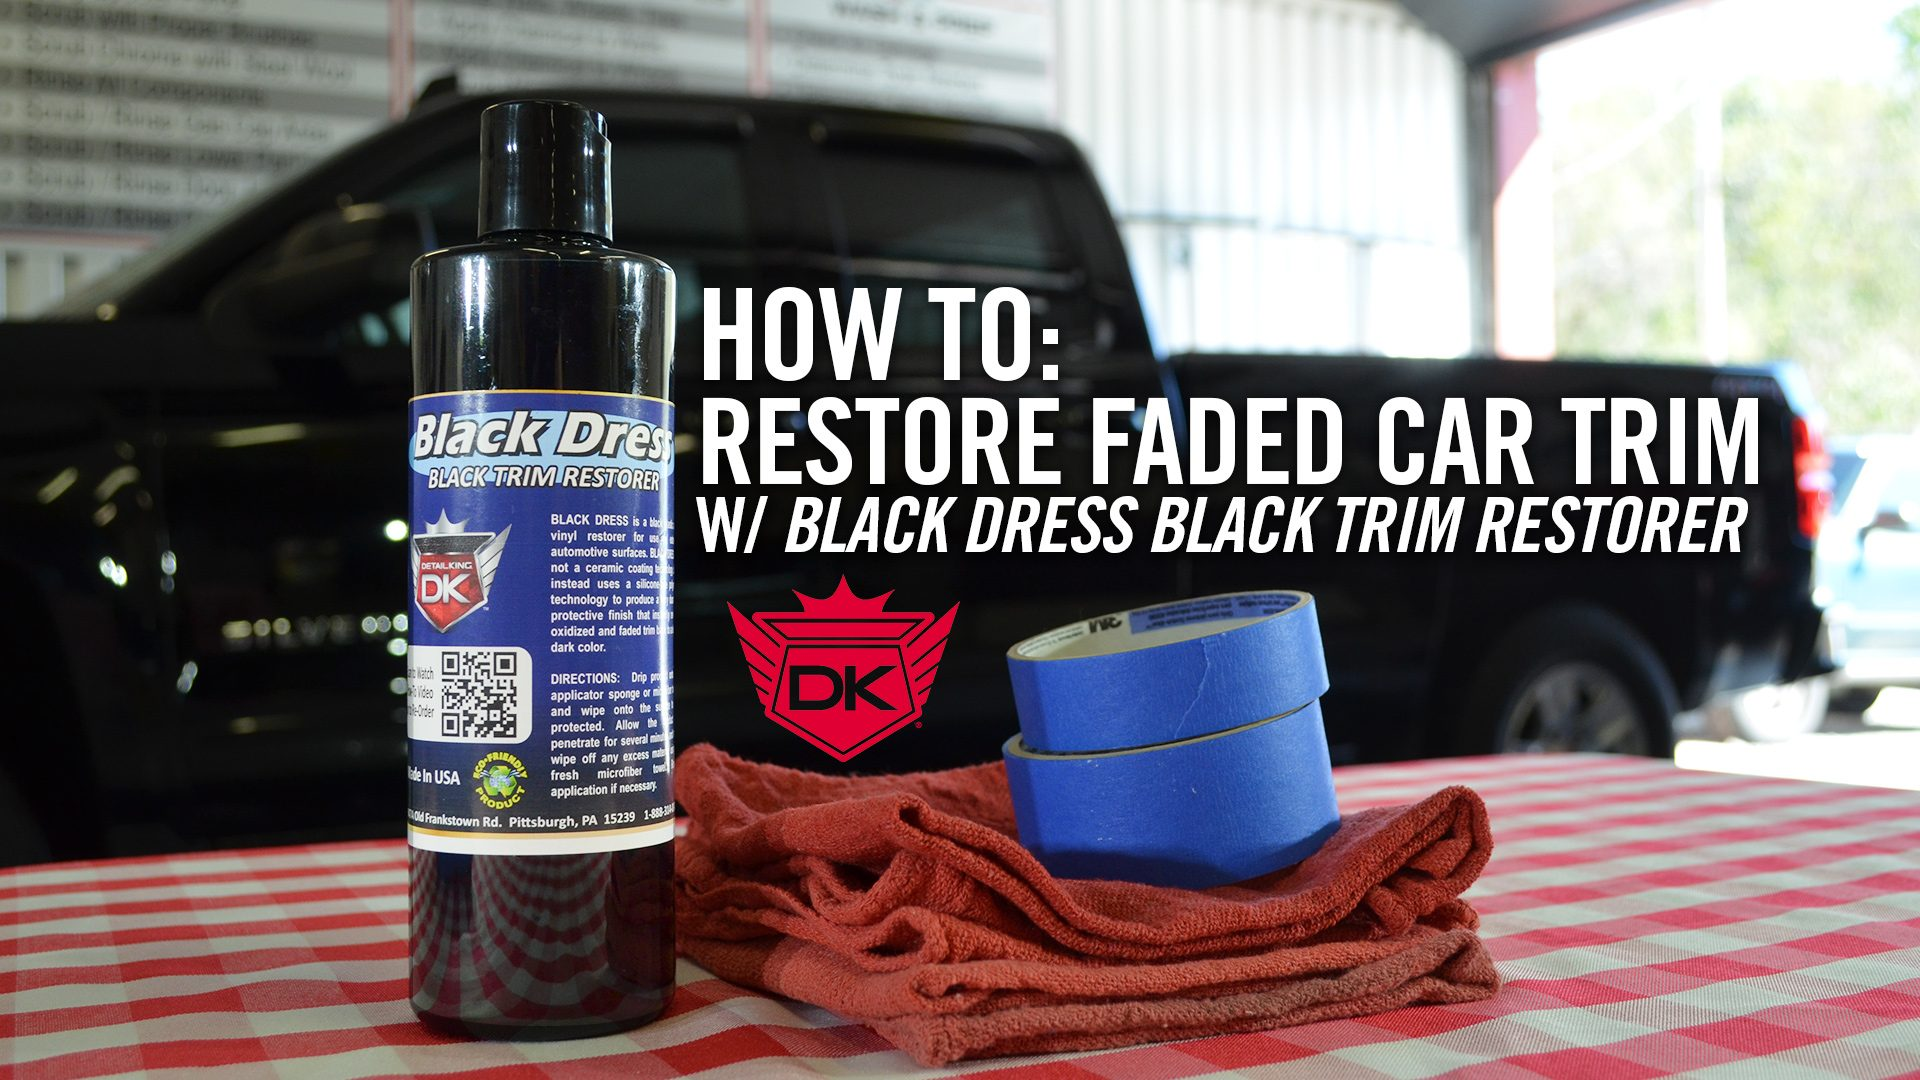 How To Restore Faded Car Trim with Black Dress Black Trim Restorer